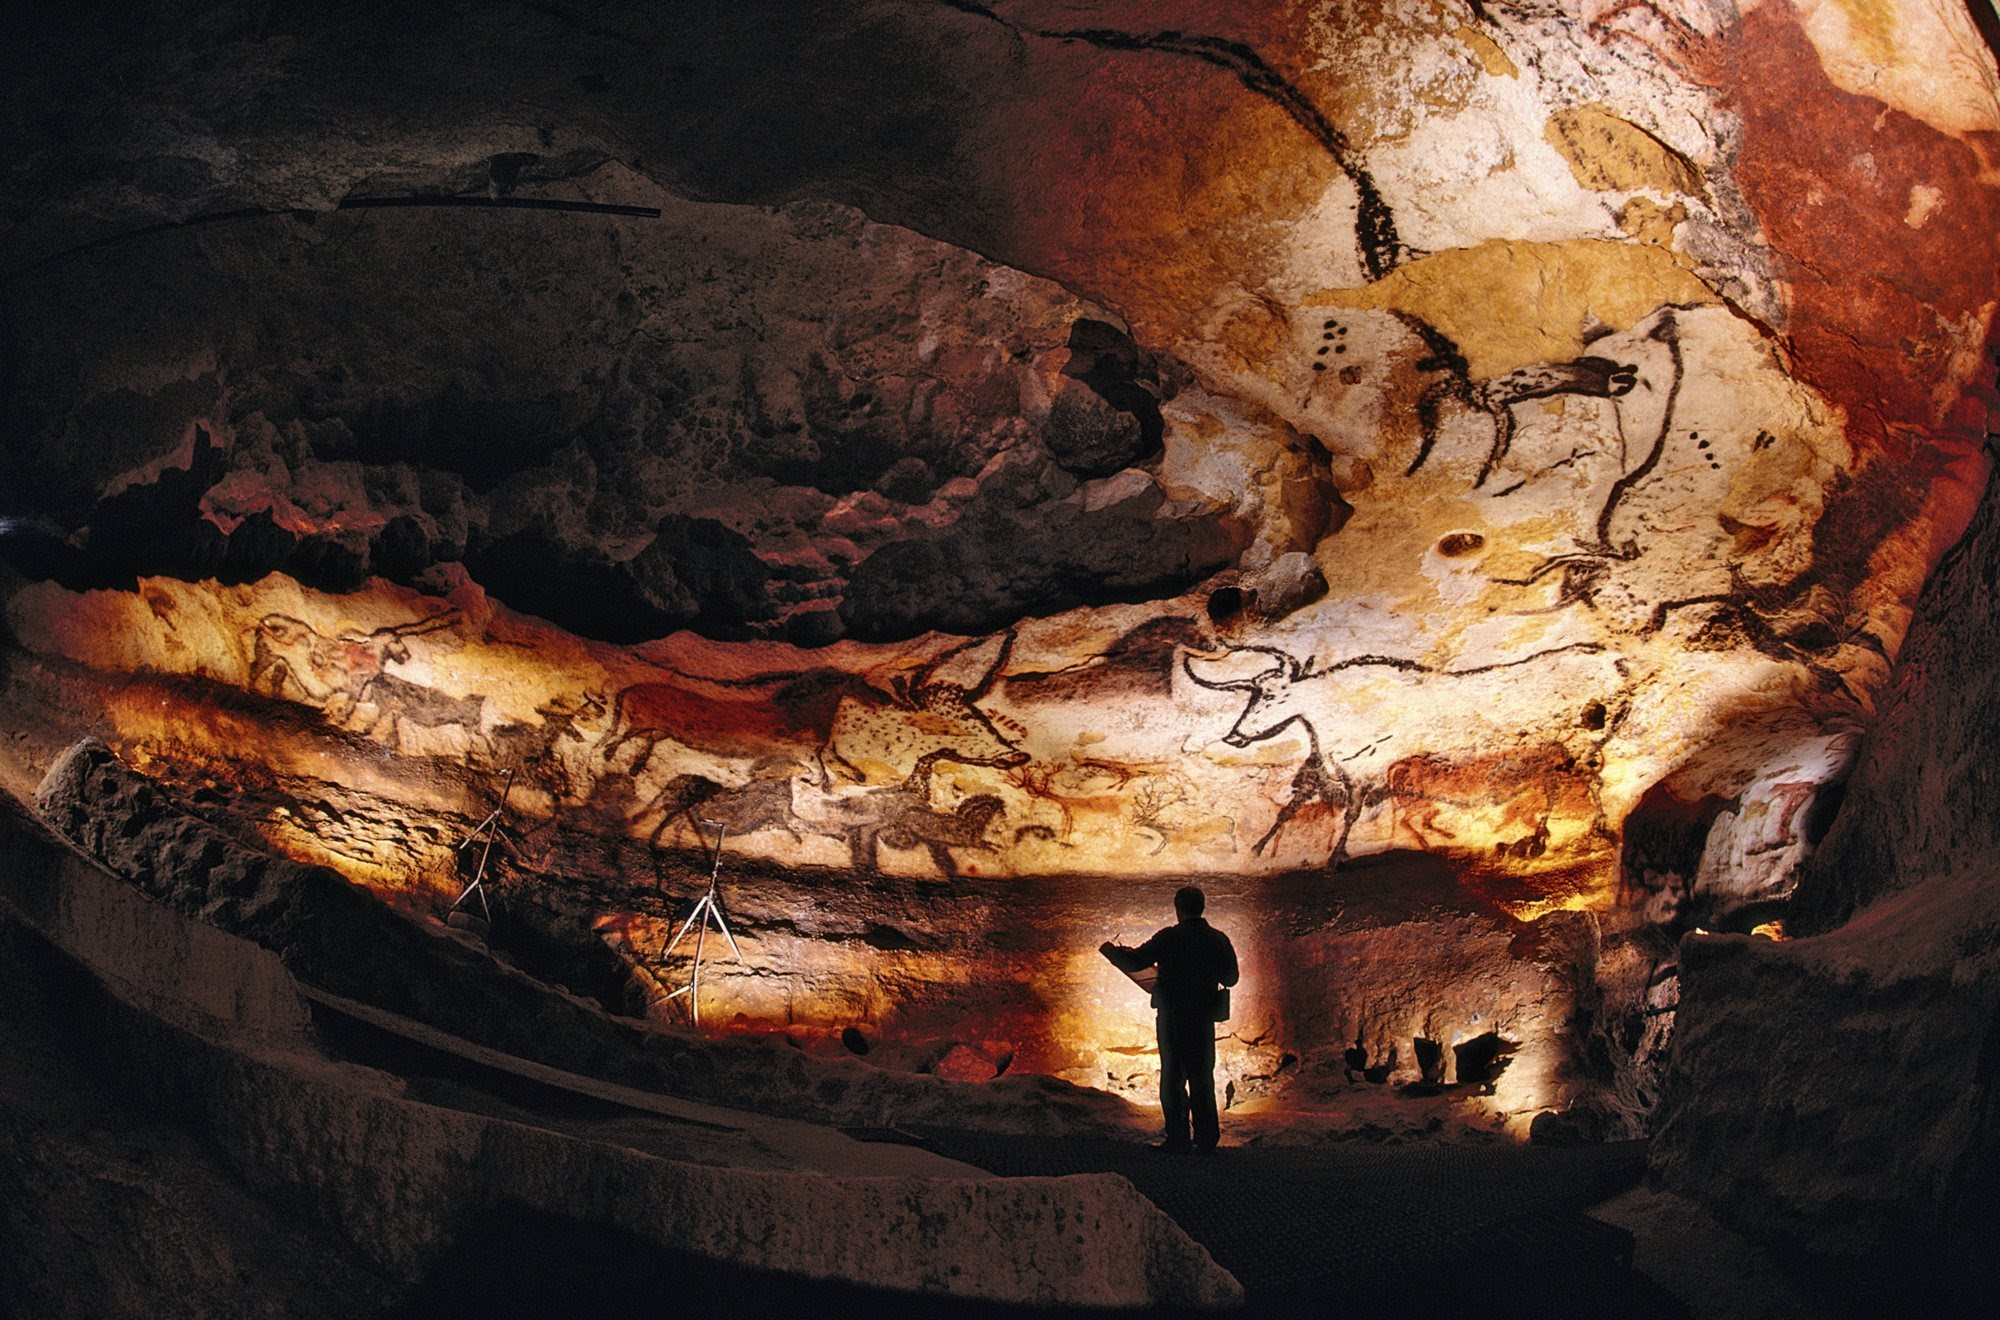 Palaeolithic Paintings at Lascaux Cave (France) (Source: National Geographic)